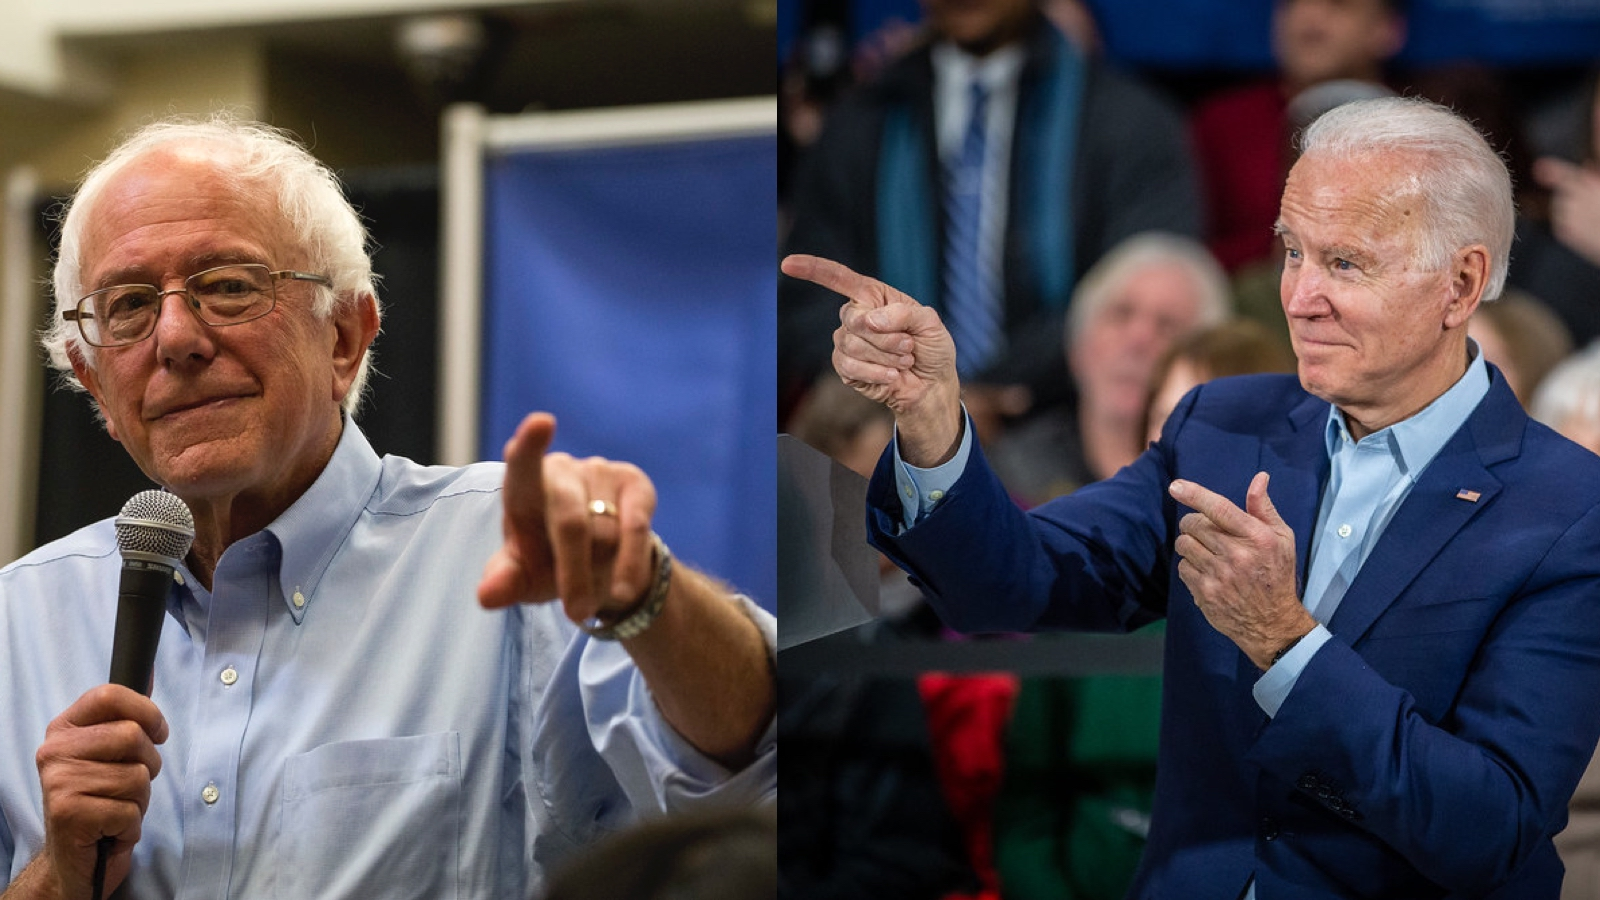 Democratic Primary Race Shifts Rapidly